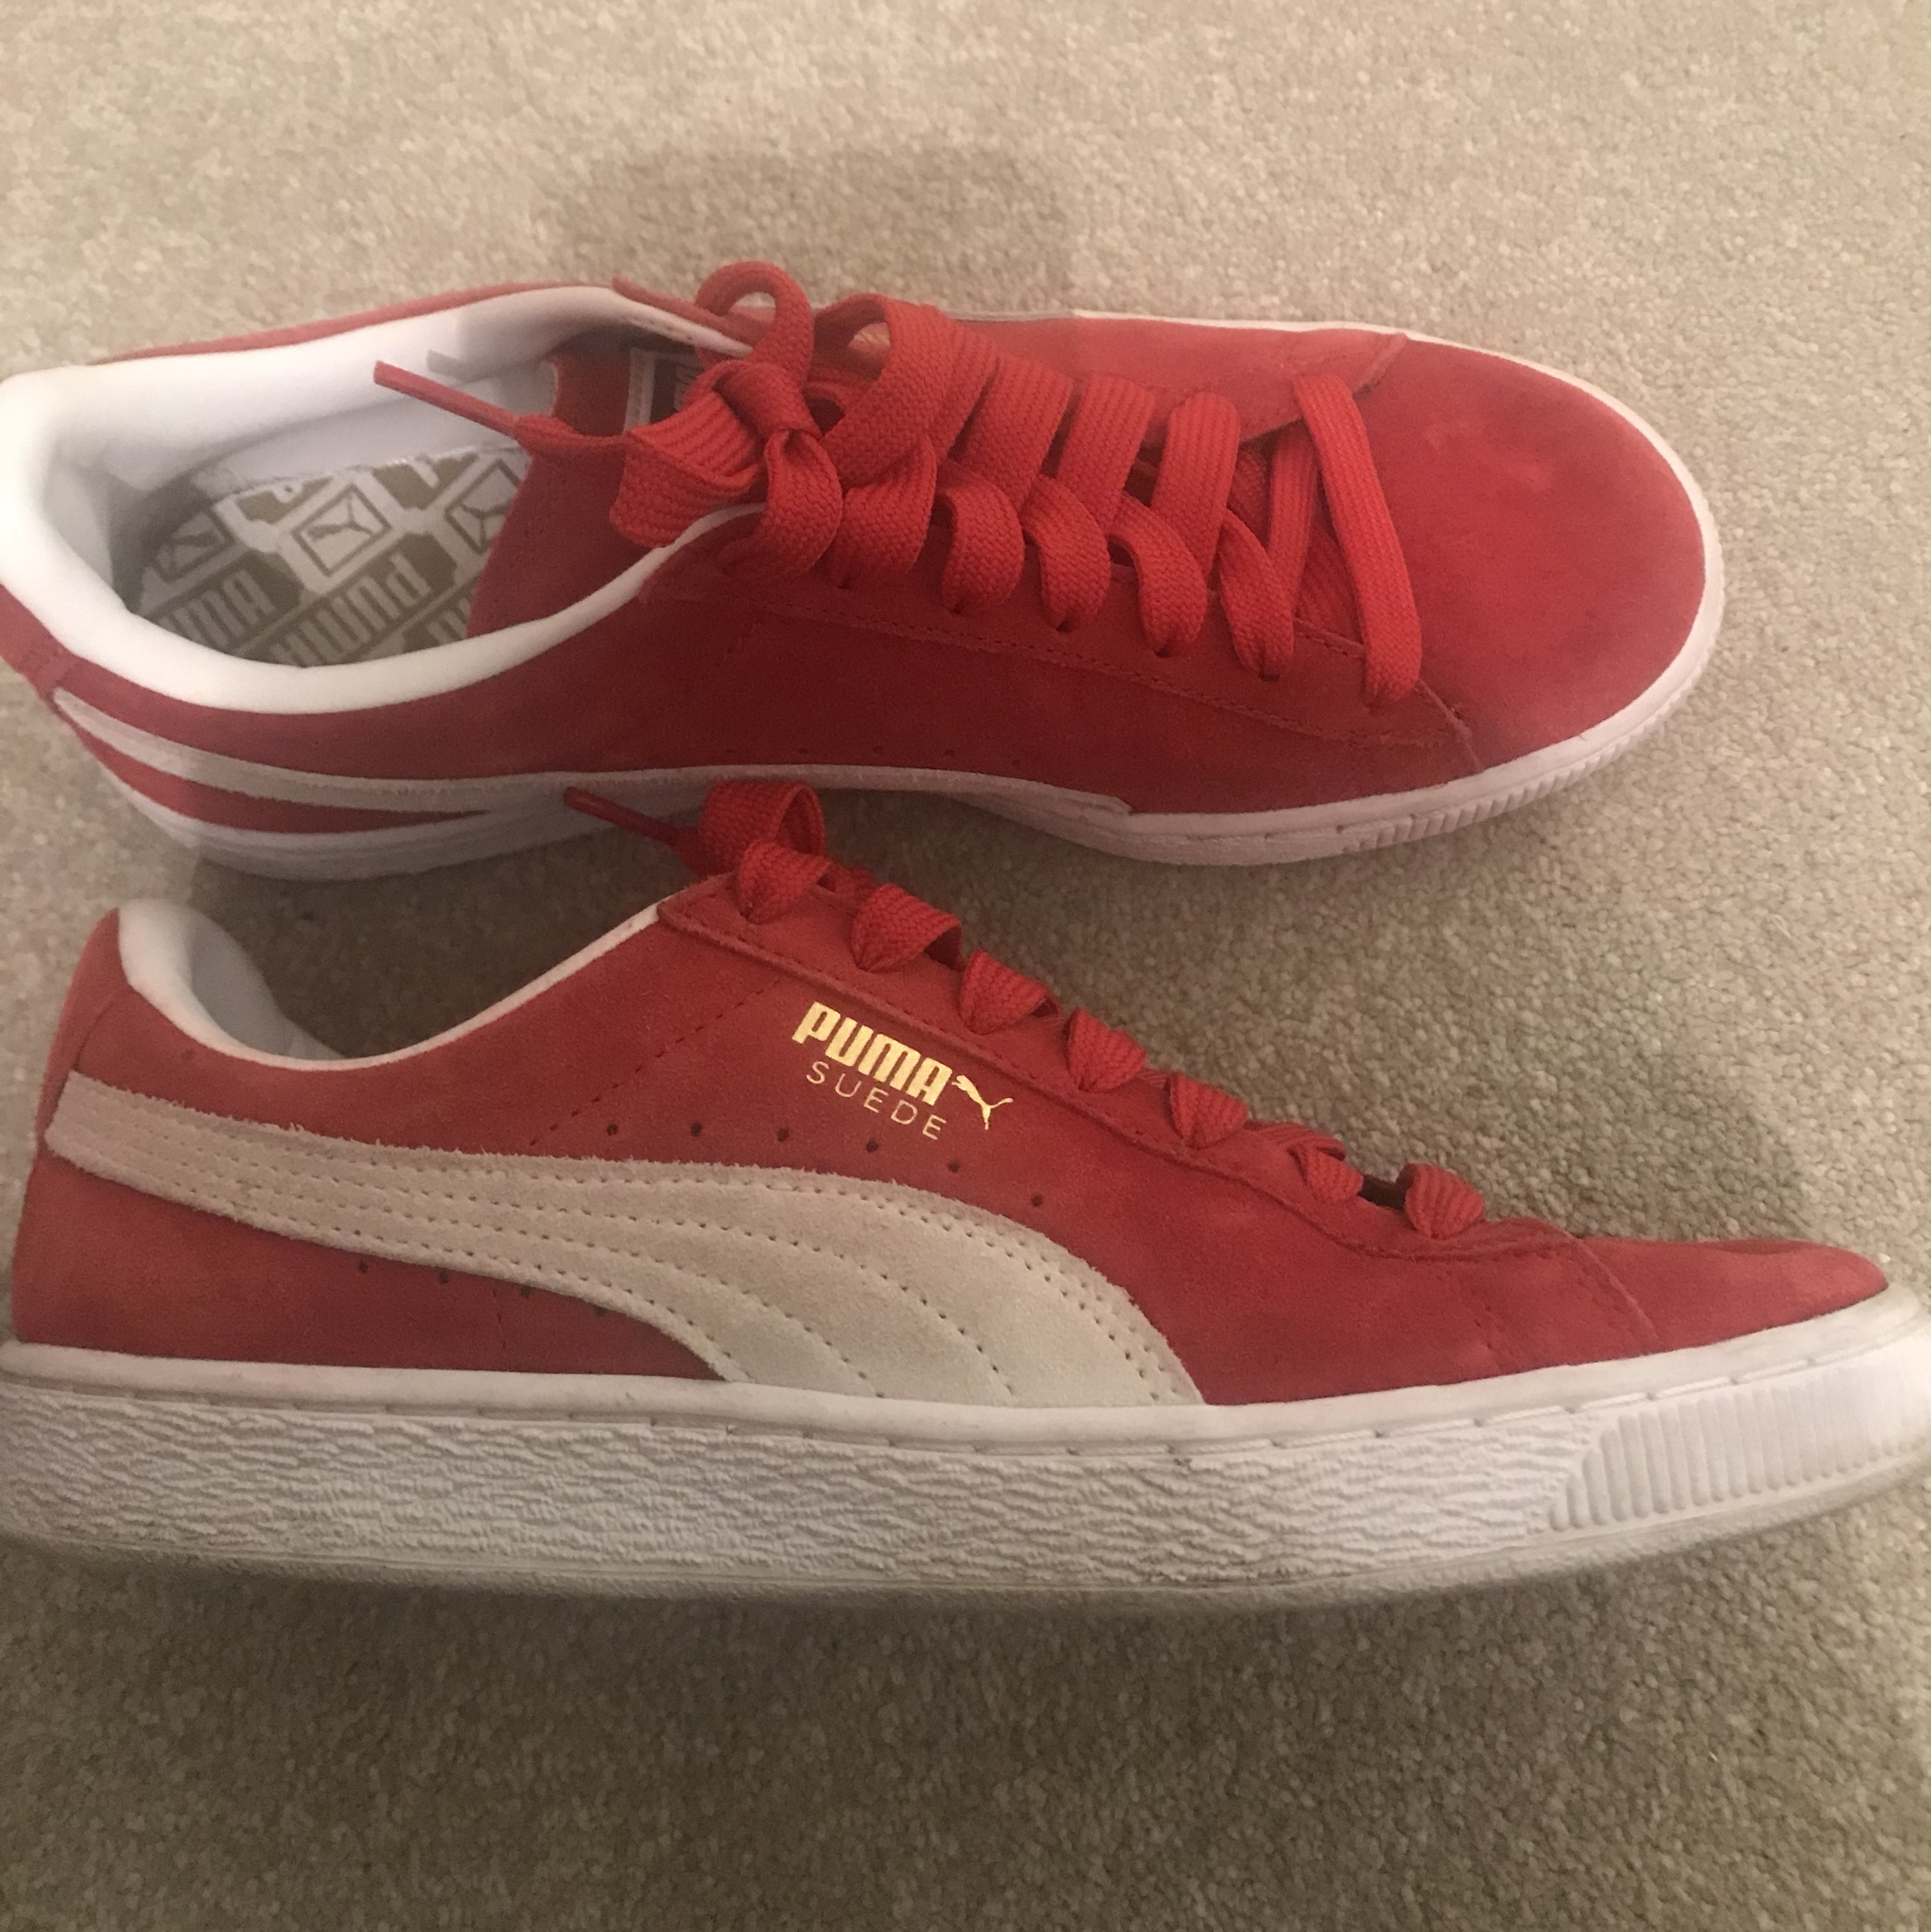 new arrivals 3dcc8 f45f2 Puma Suede Red Trainers in UK 6.5. Bought off ASOS ...